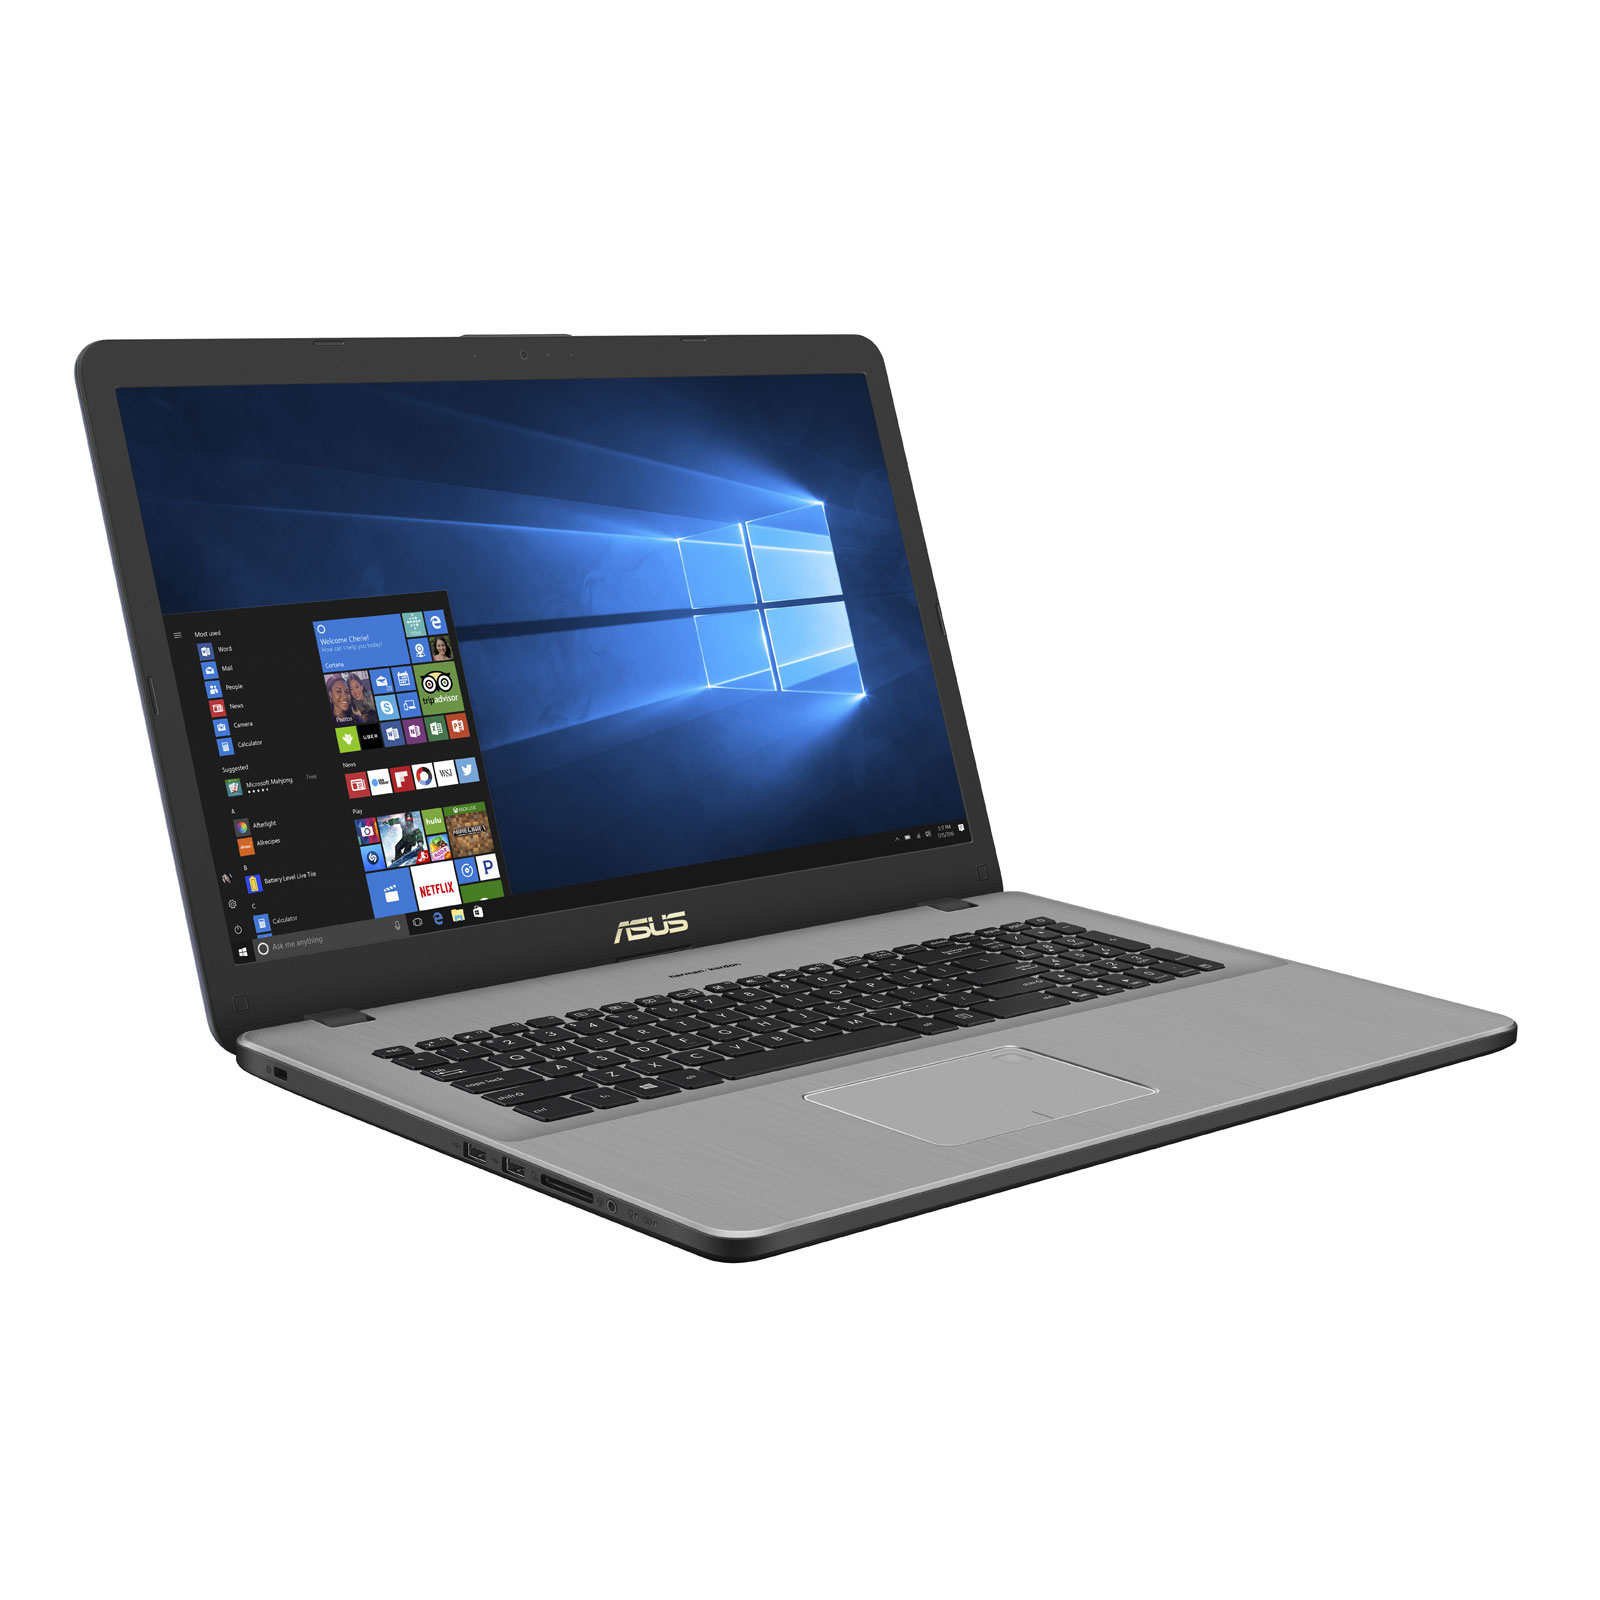 "PC portable ASUS R702UV-BX063T Intel Core i5-7200U 8 Go SSD 128 Go + HDD 1 To 17.3"" LED HD+ NVIDIA GeForce 920MX Wi-Fi N/Bluetooth Webcam Windows 10 Famille 64 bits (garantie constructeur 2 ans)"